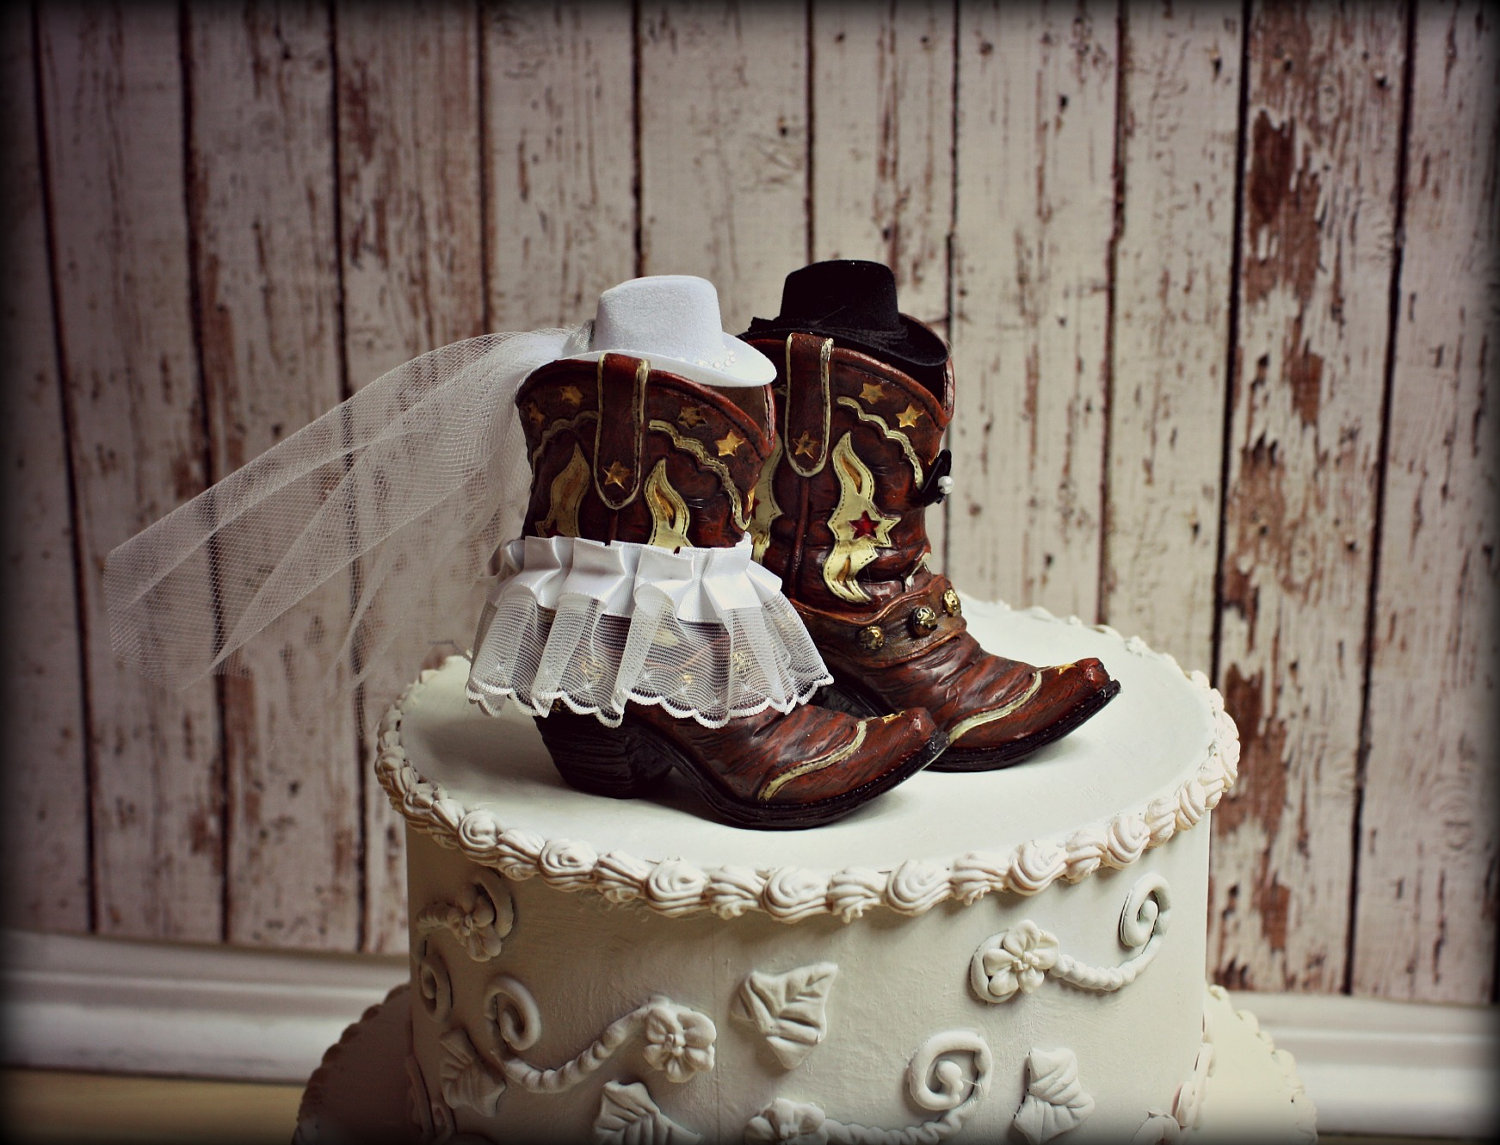 Western Theme Wedding Cake Toppers - 5000+ Simple Wedding Cakes